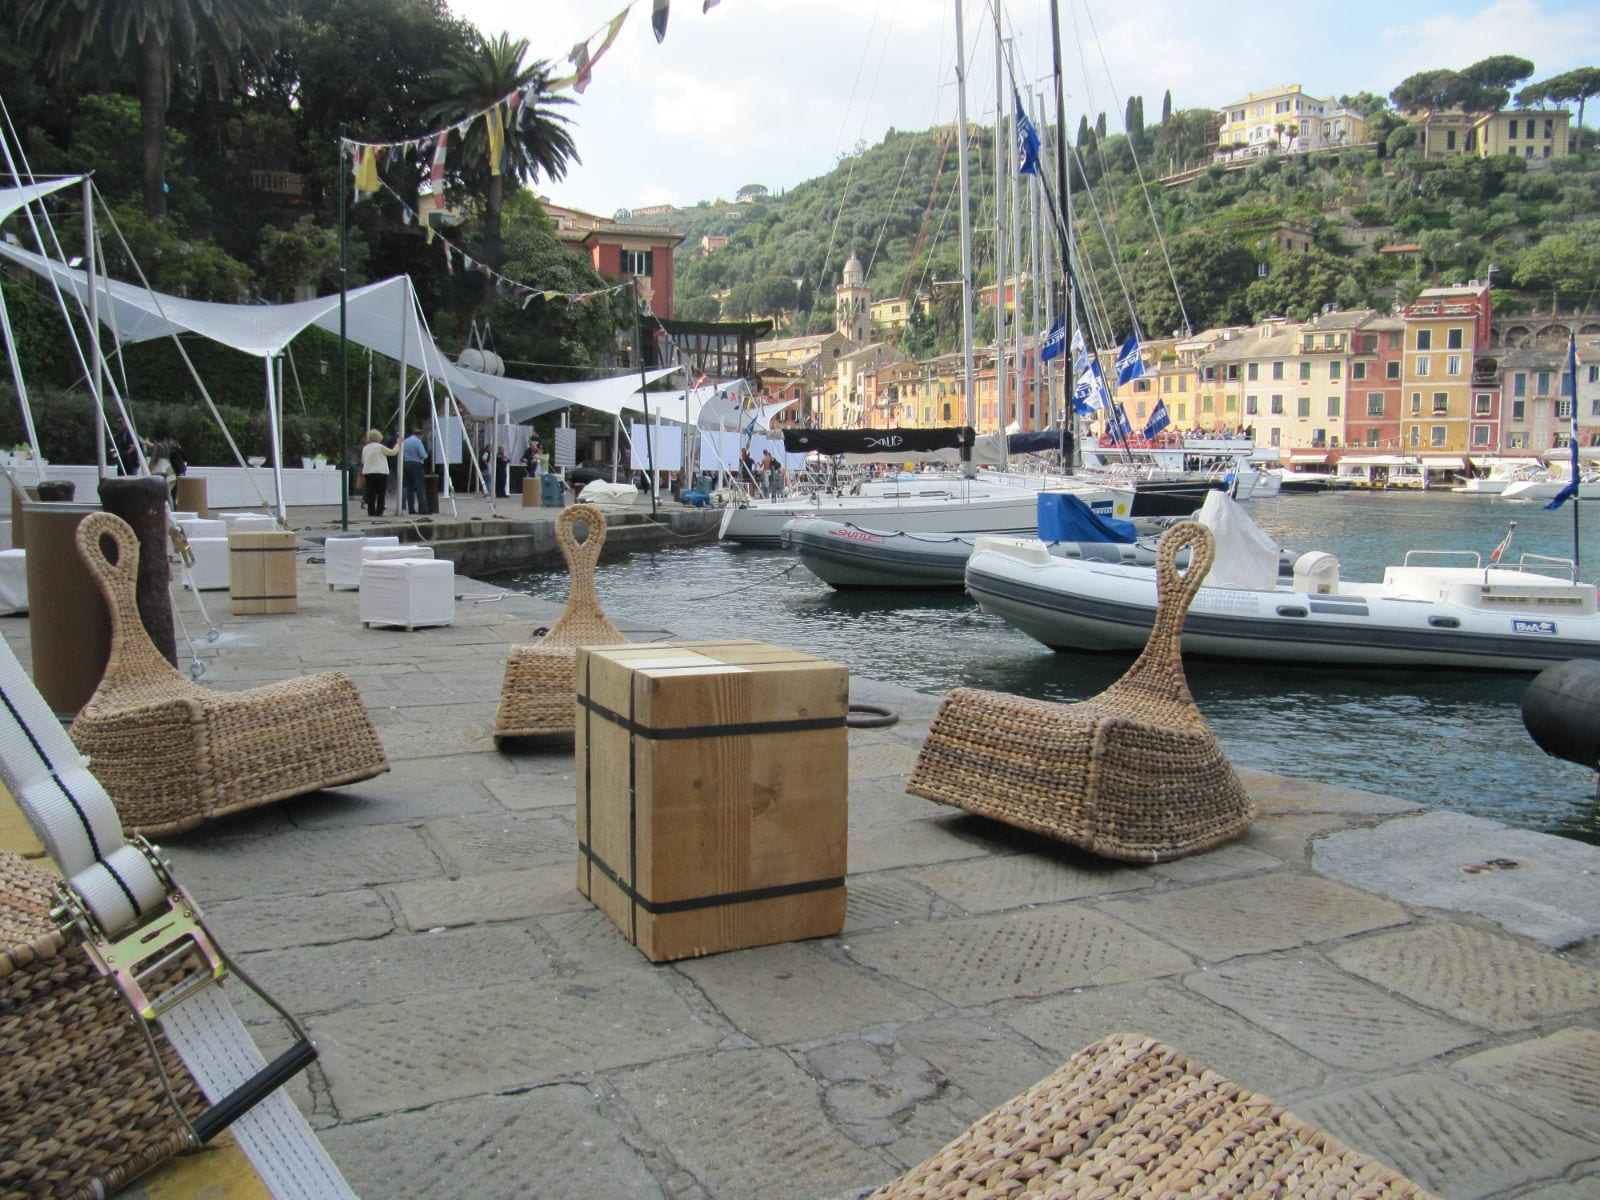 Girls Who Travel | Lounge seating beside the docks in the Portofino harbor